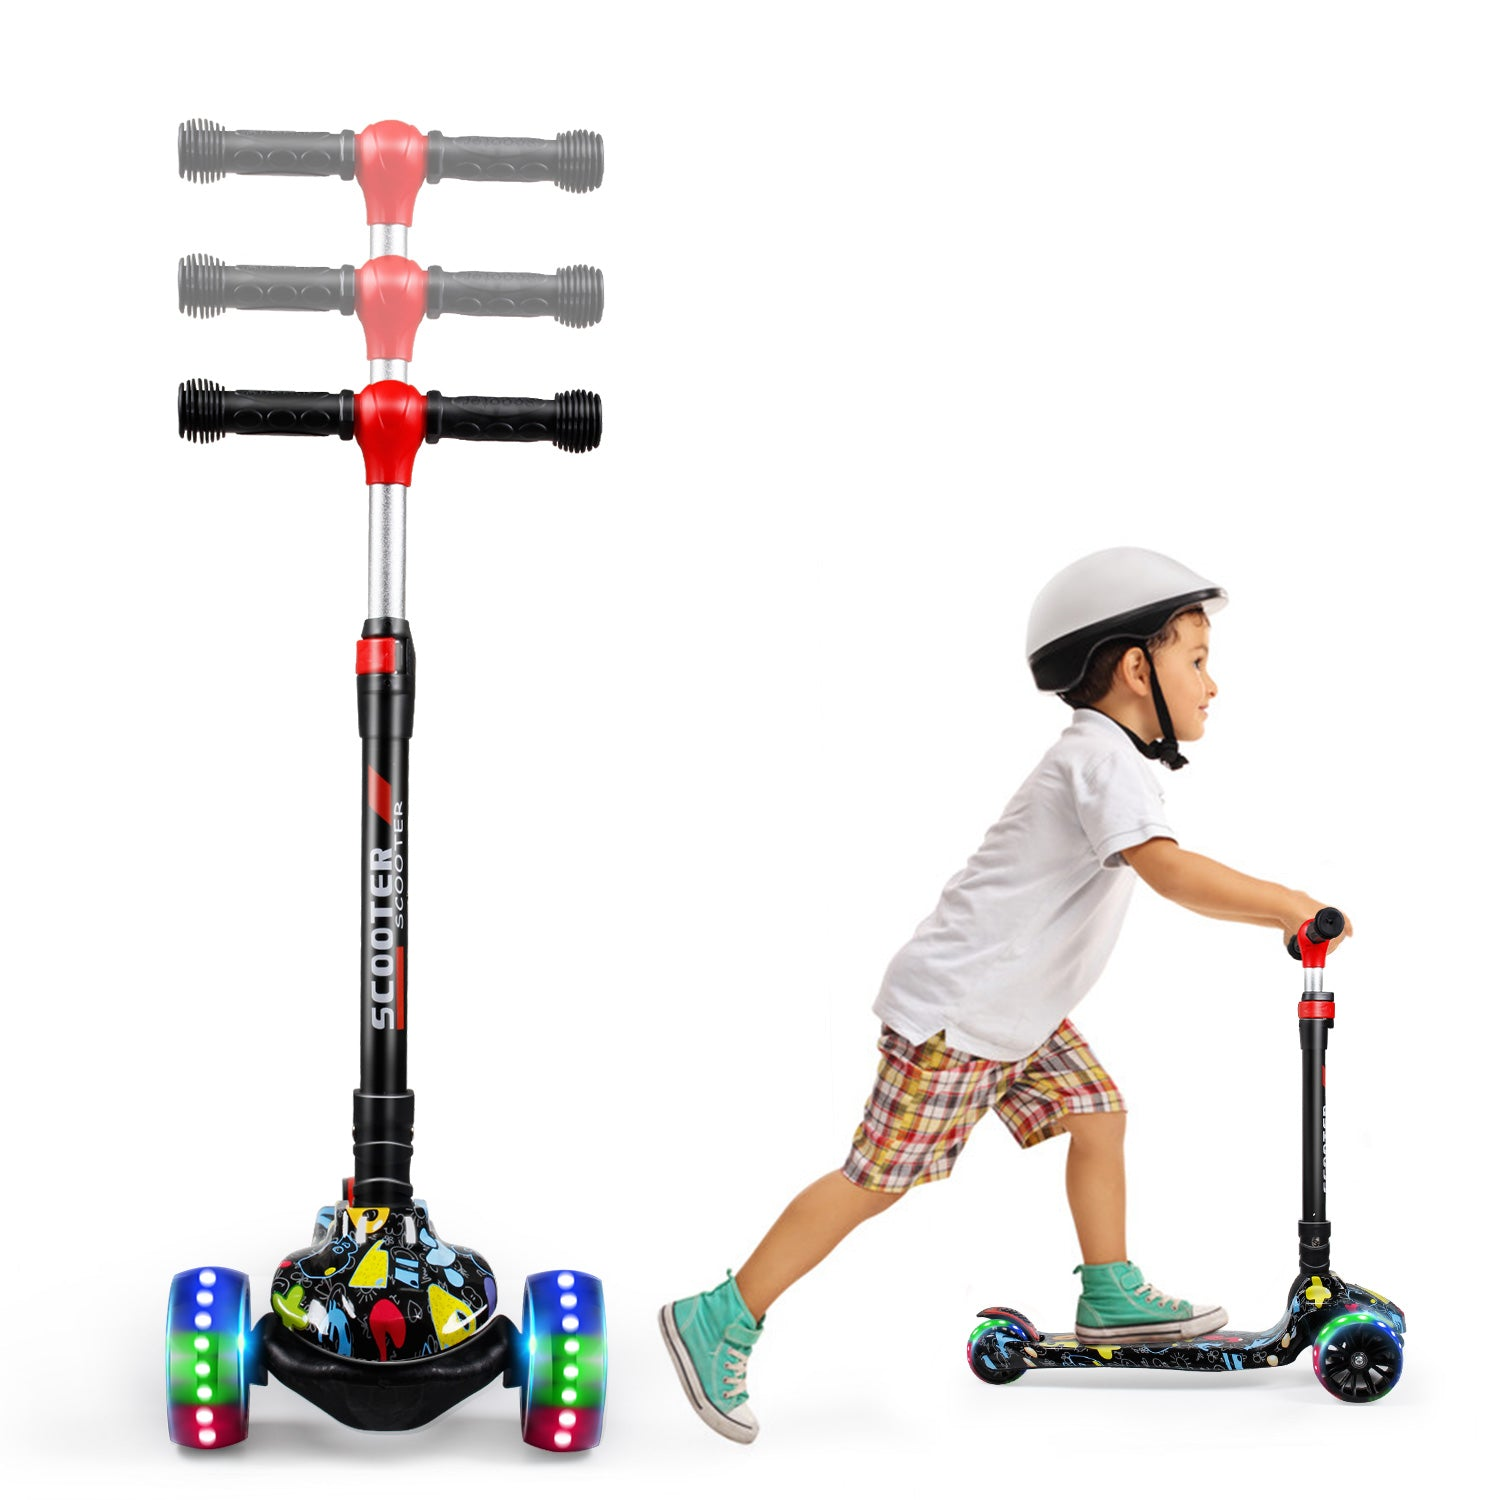 SISIGAD Kick Scooter for Kids (Graffiti Yellow/Black/White)